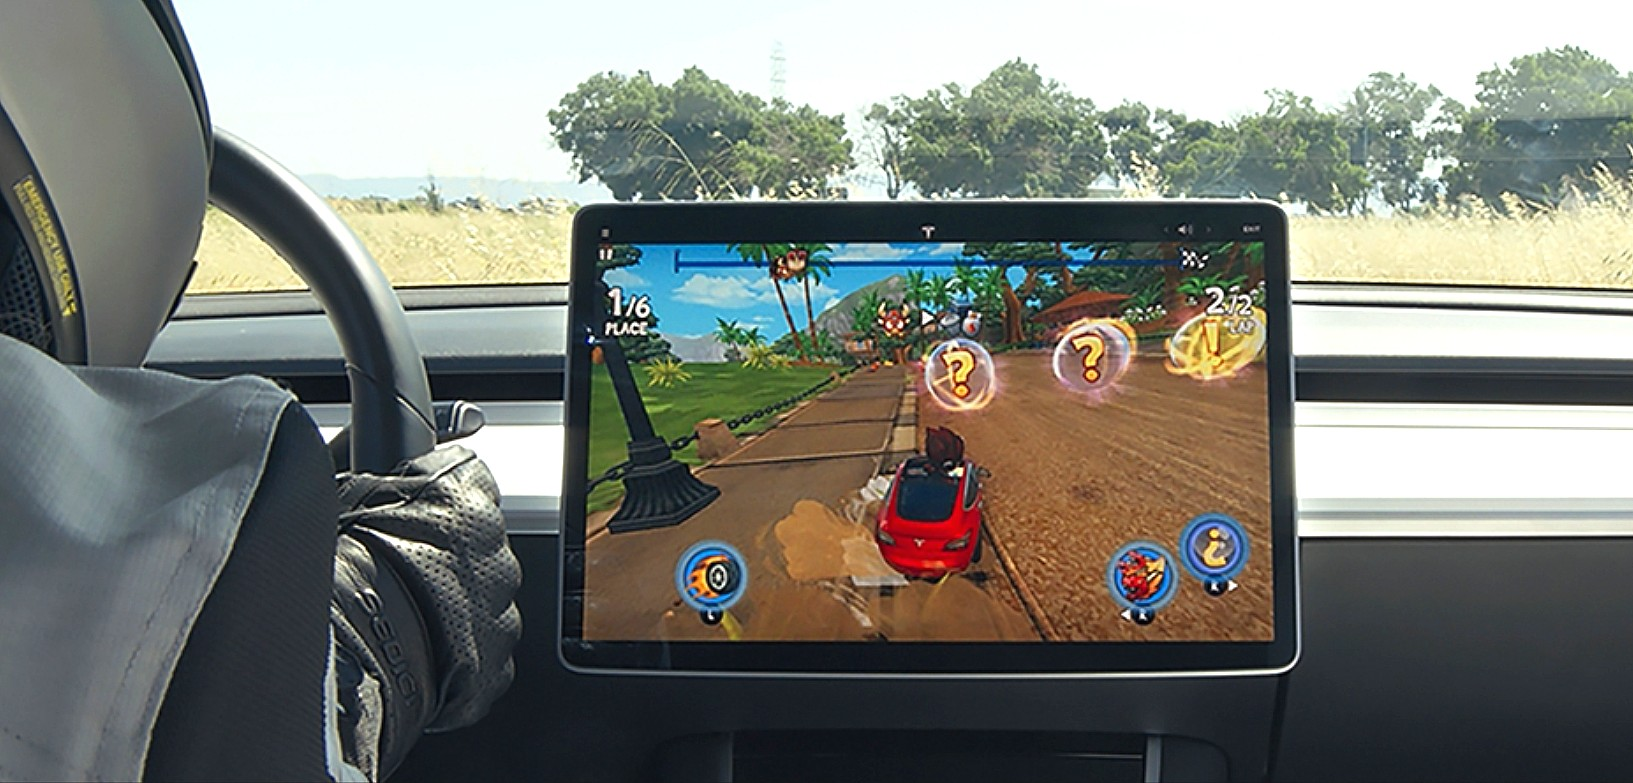 Tesla rolls out new racing game, releases invites for Tesla Arcade events